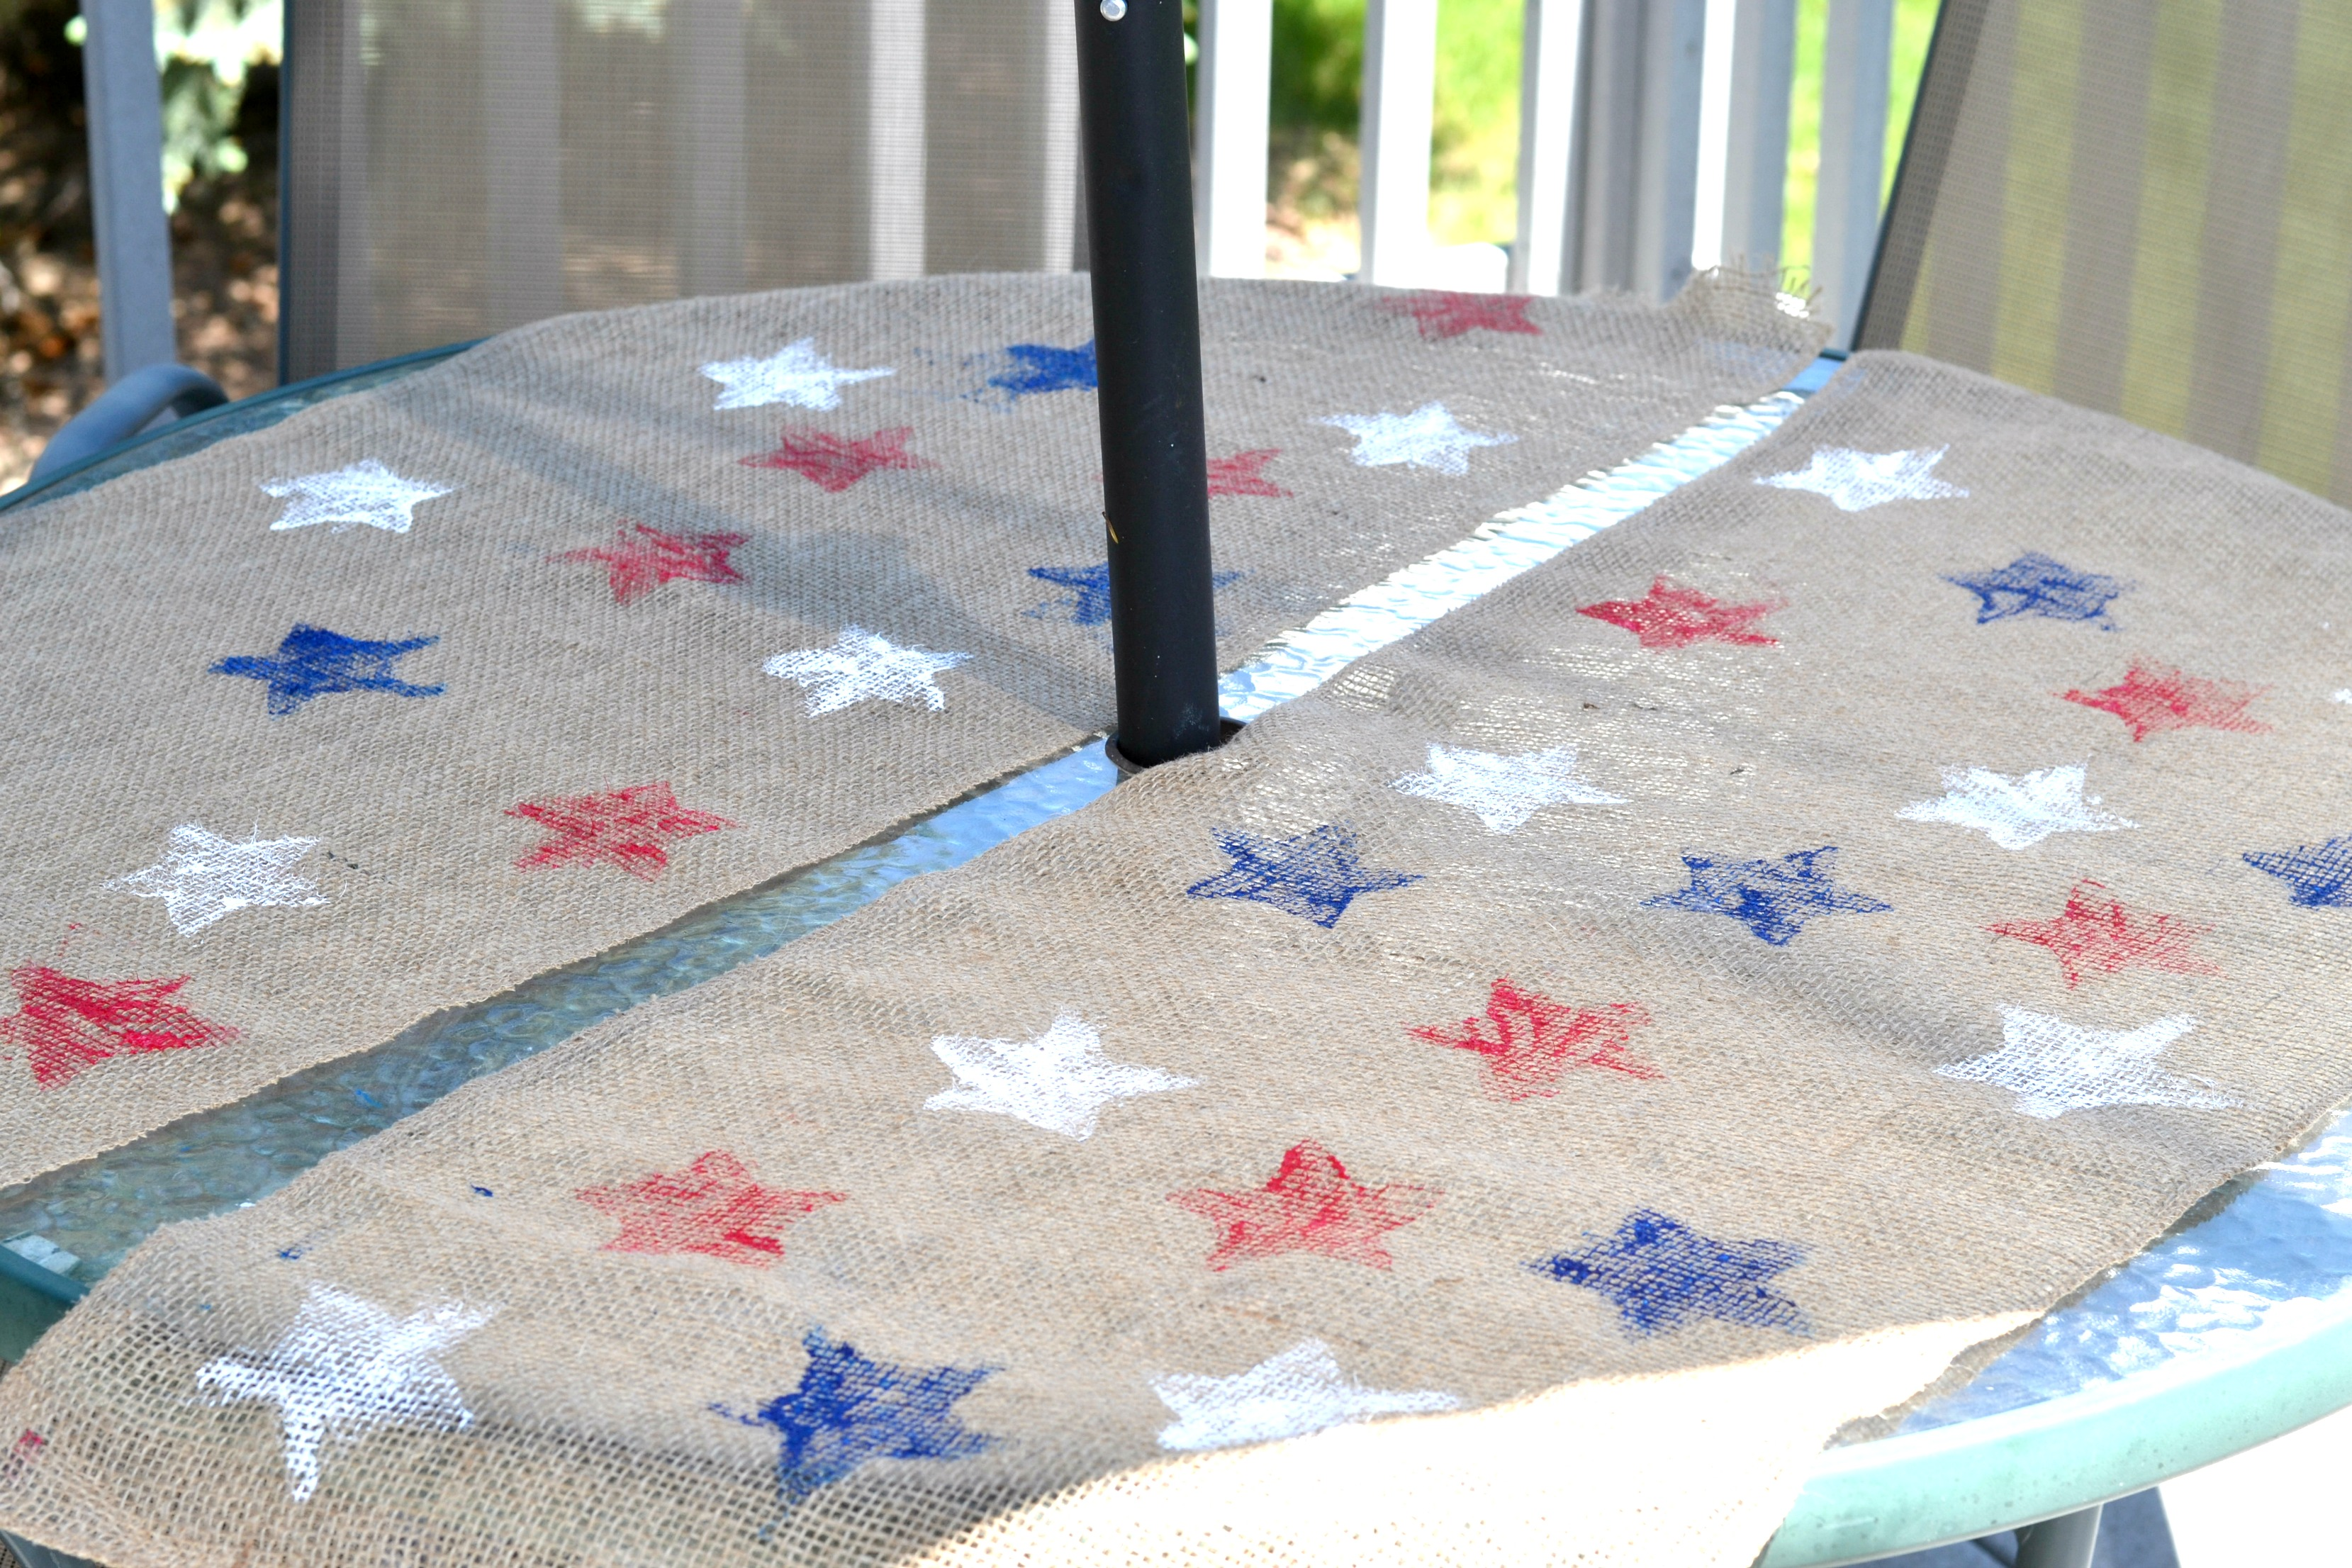 red, white and blue crafts, DIY table runner with stars, memorial day bbq decorations, easy memorial day decorations, easy 4th of july decorations, 4th of july table runner